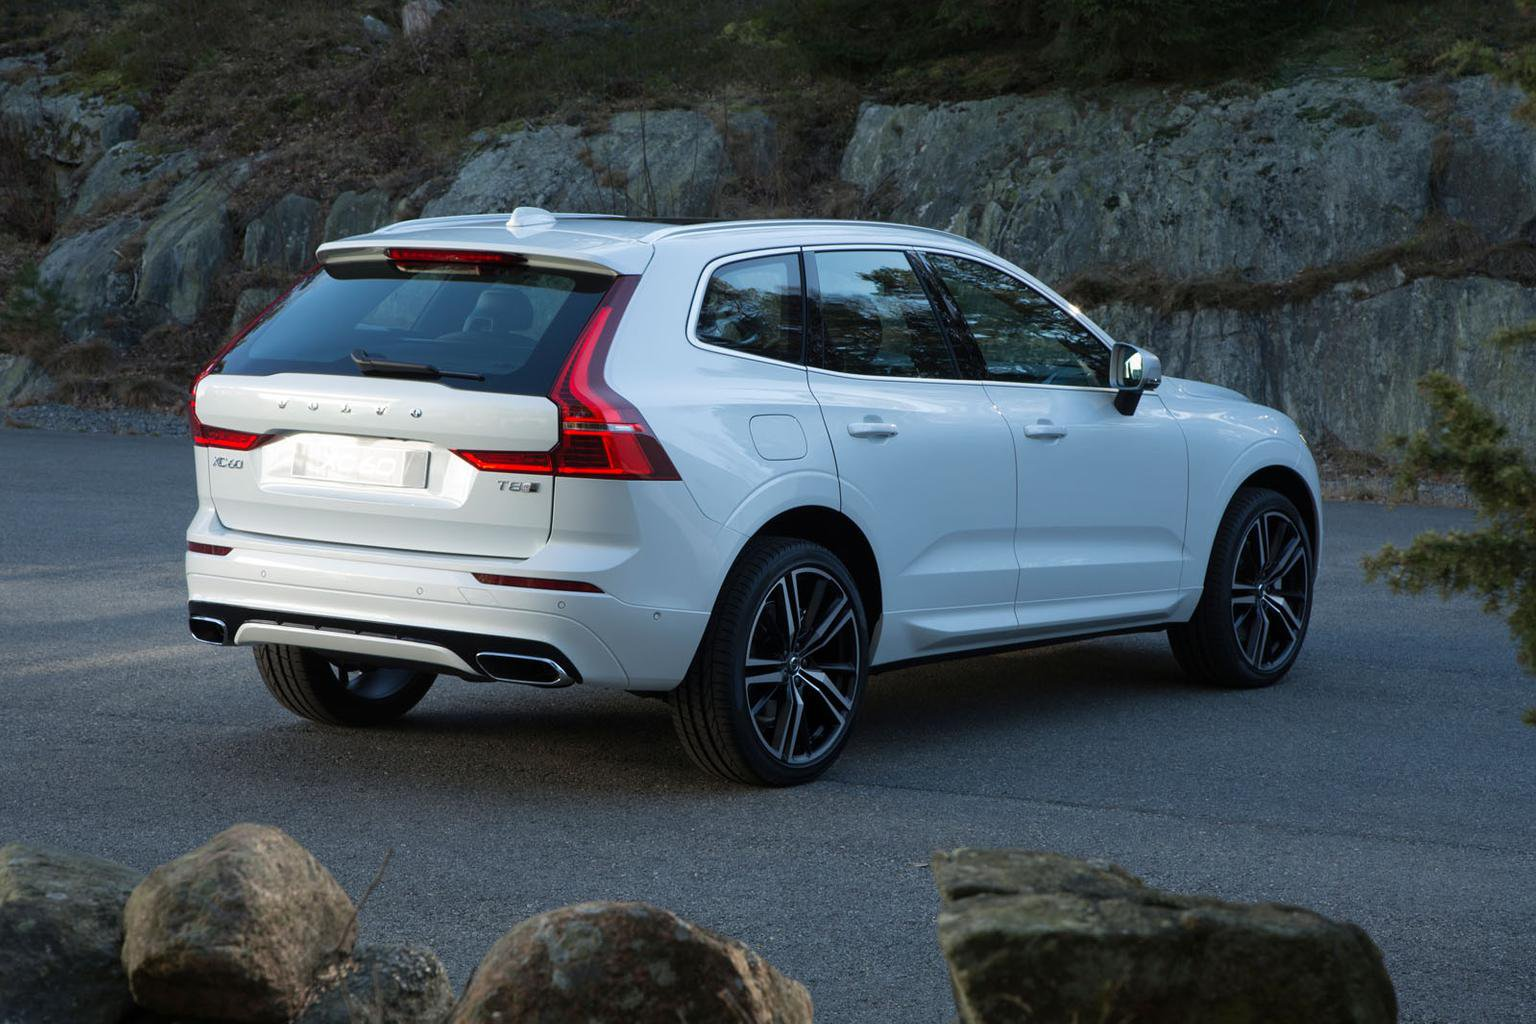 2017 Volvo XC60 engines and equipment